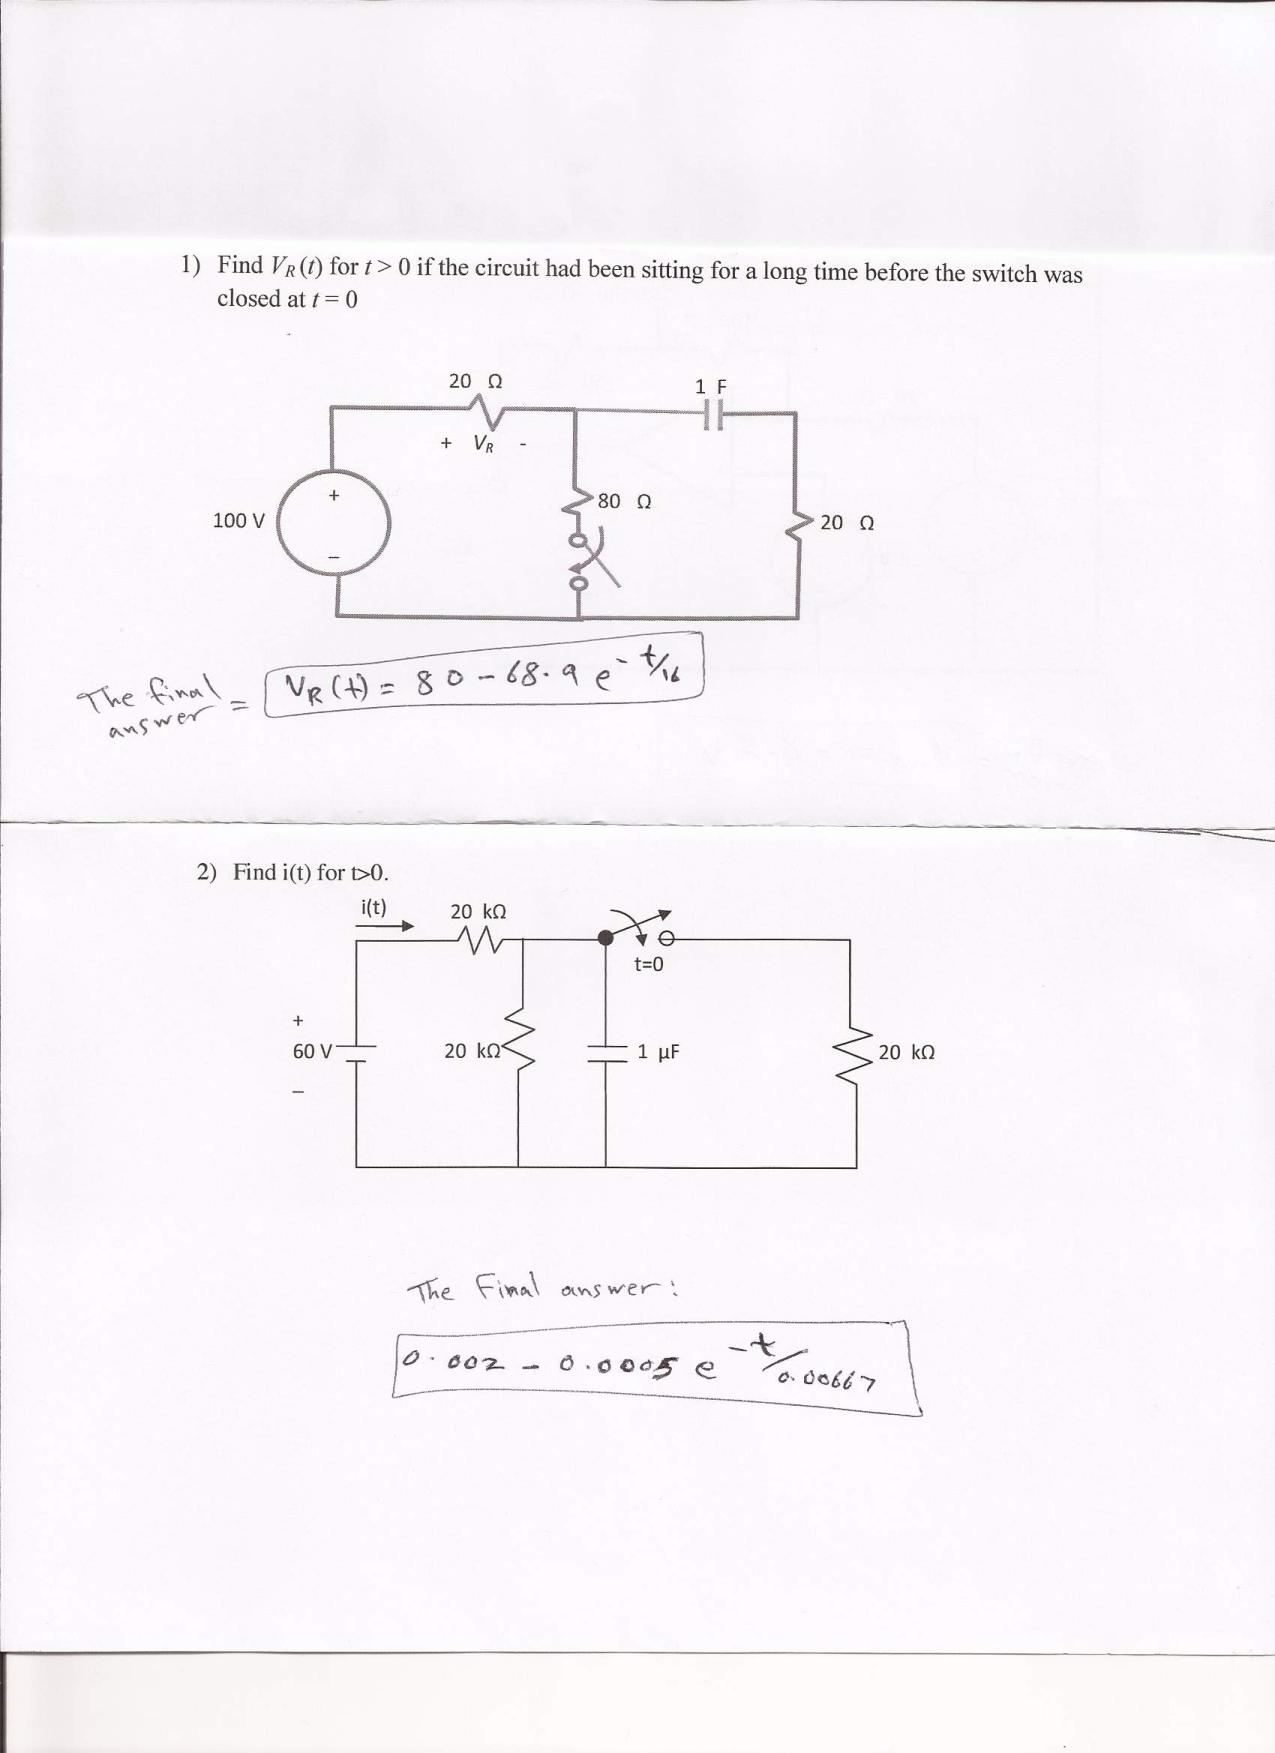 Find VR (t) for t > 0 if the circuit had been sitt